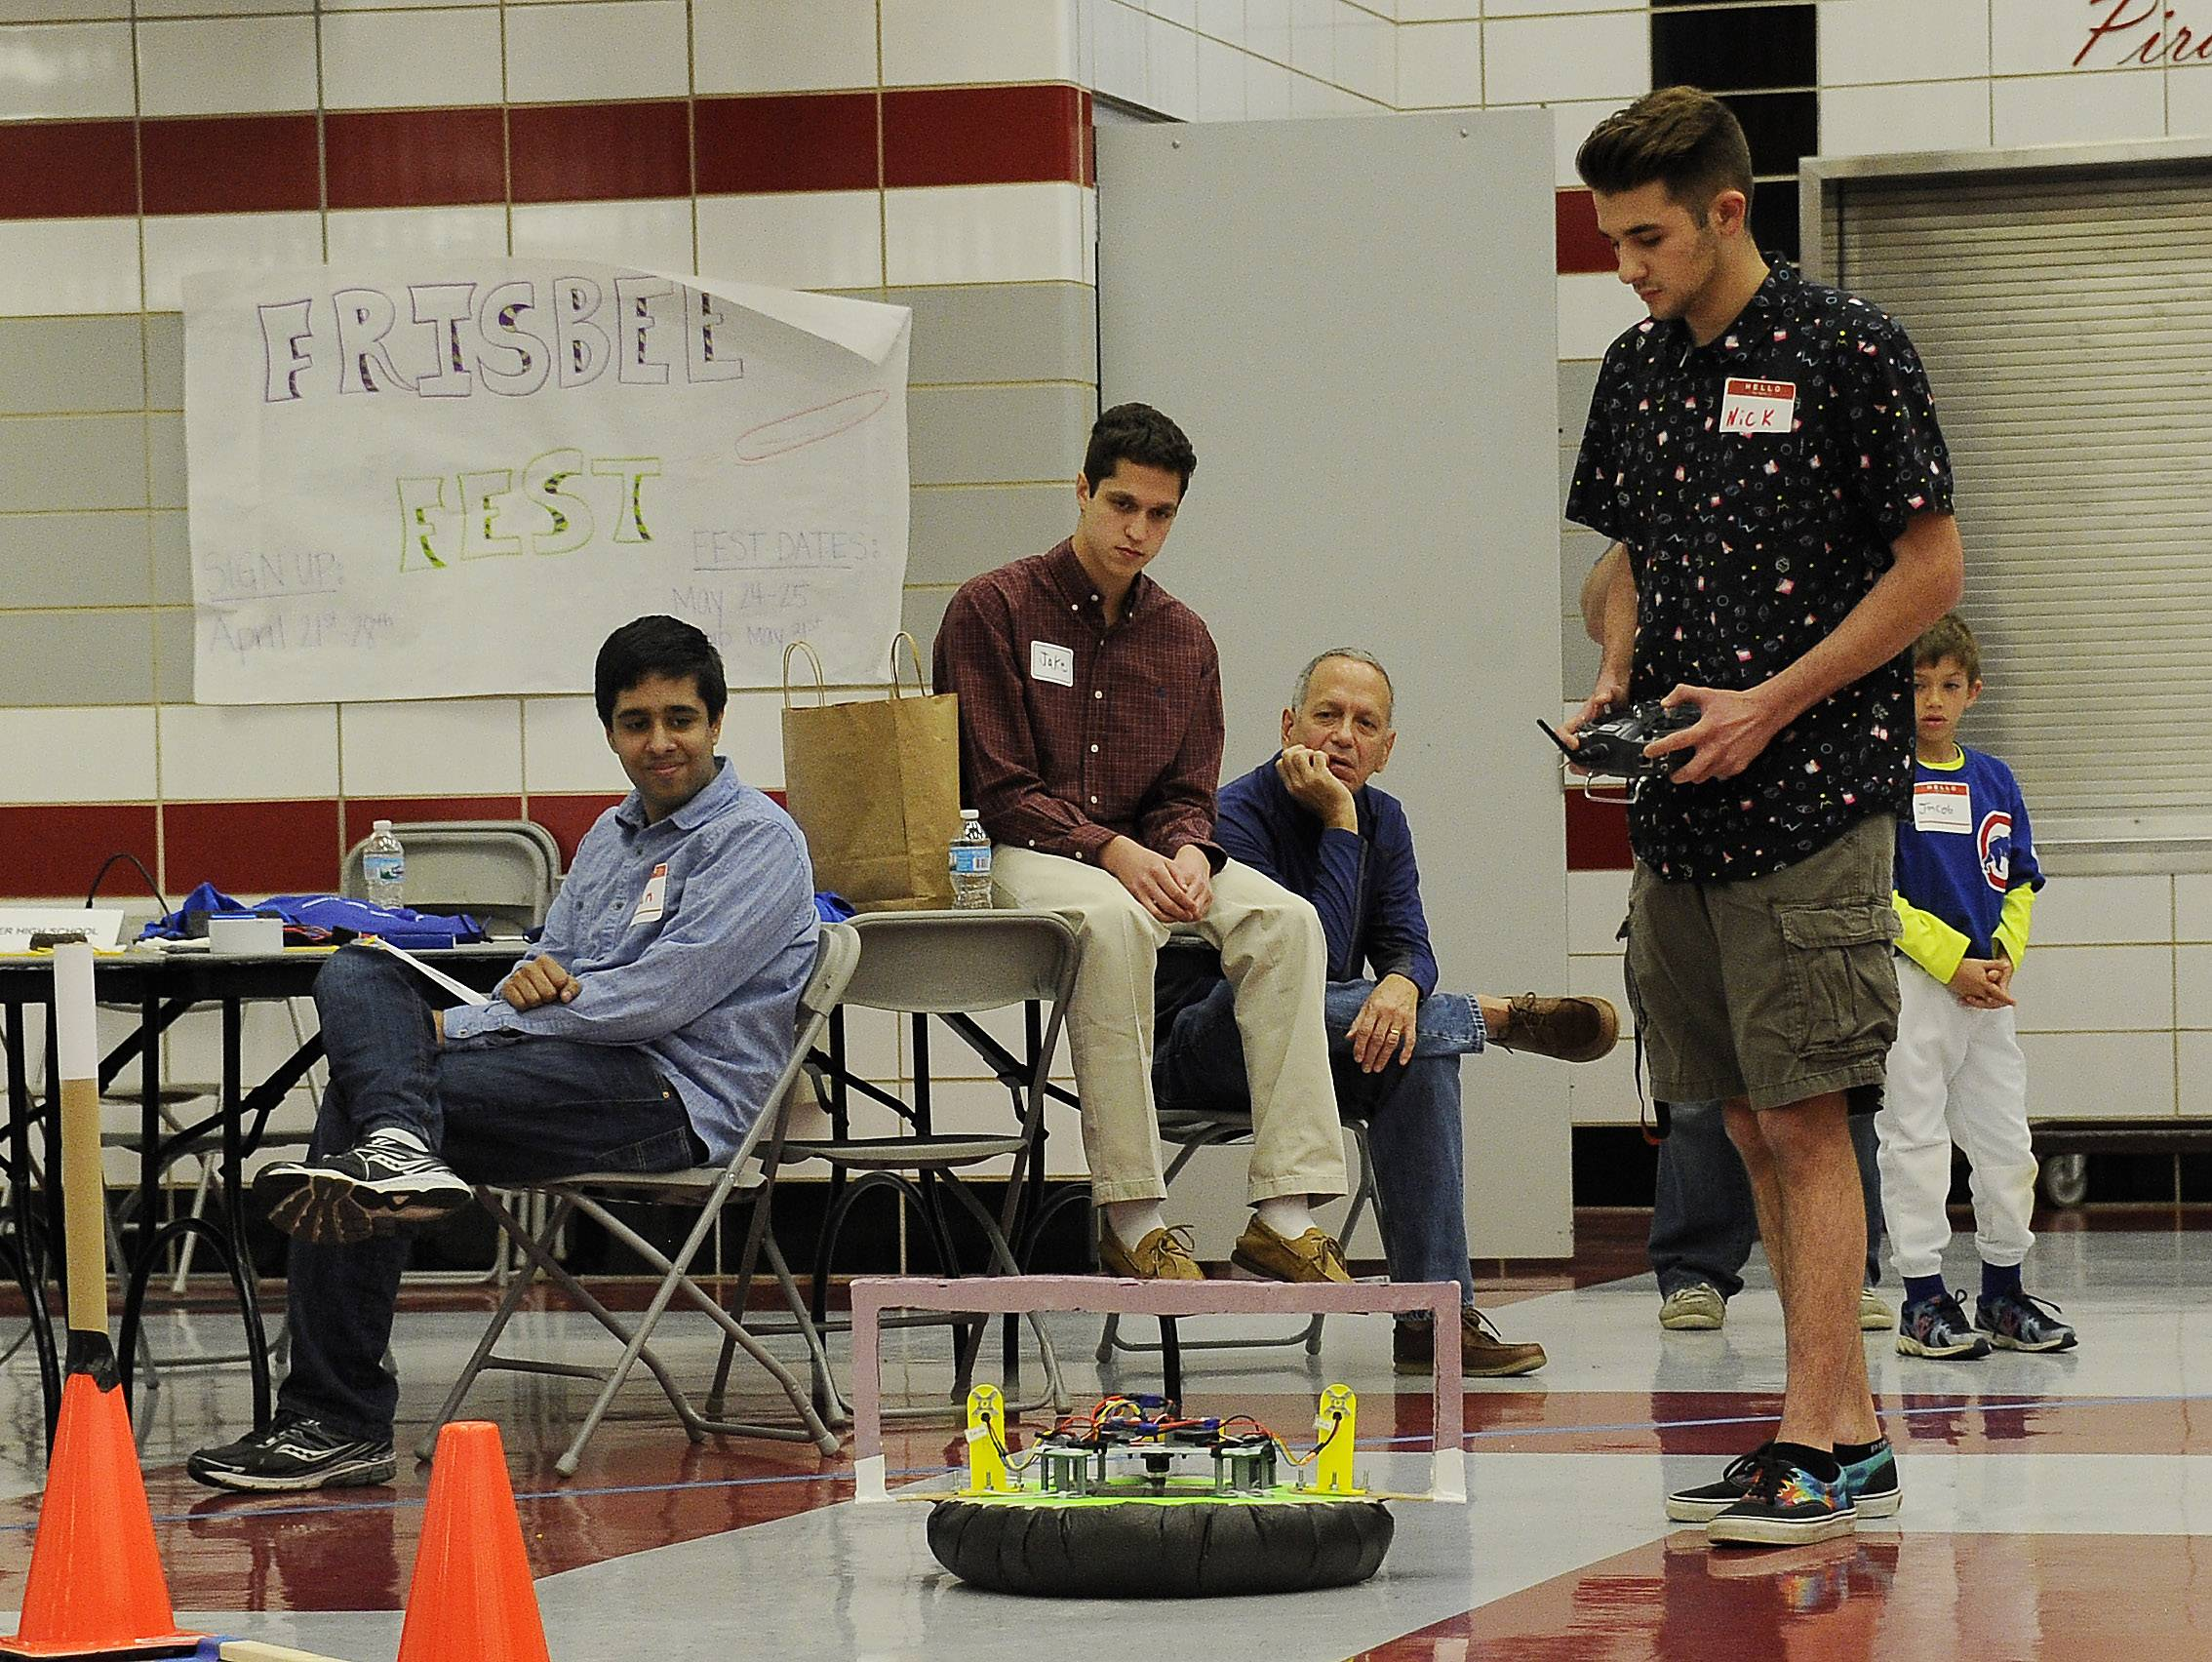 Palatine High School student Nick Losch pilots his team's hovercraft through a maze of challenges at the 2016 High School Innovation Challenge which was sponsored by Northrop Grumman.